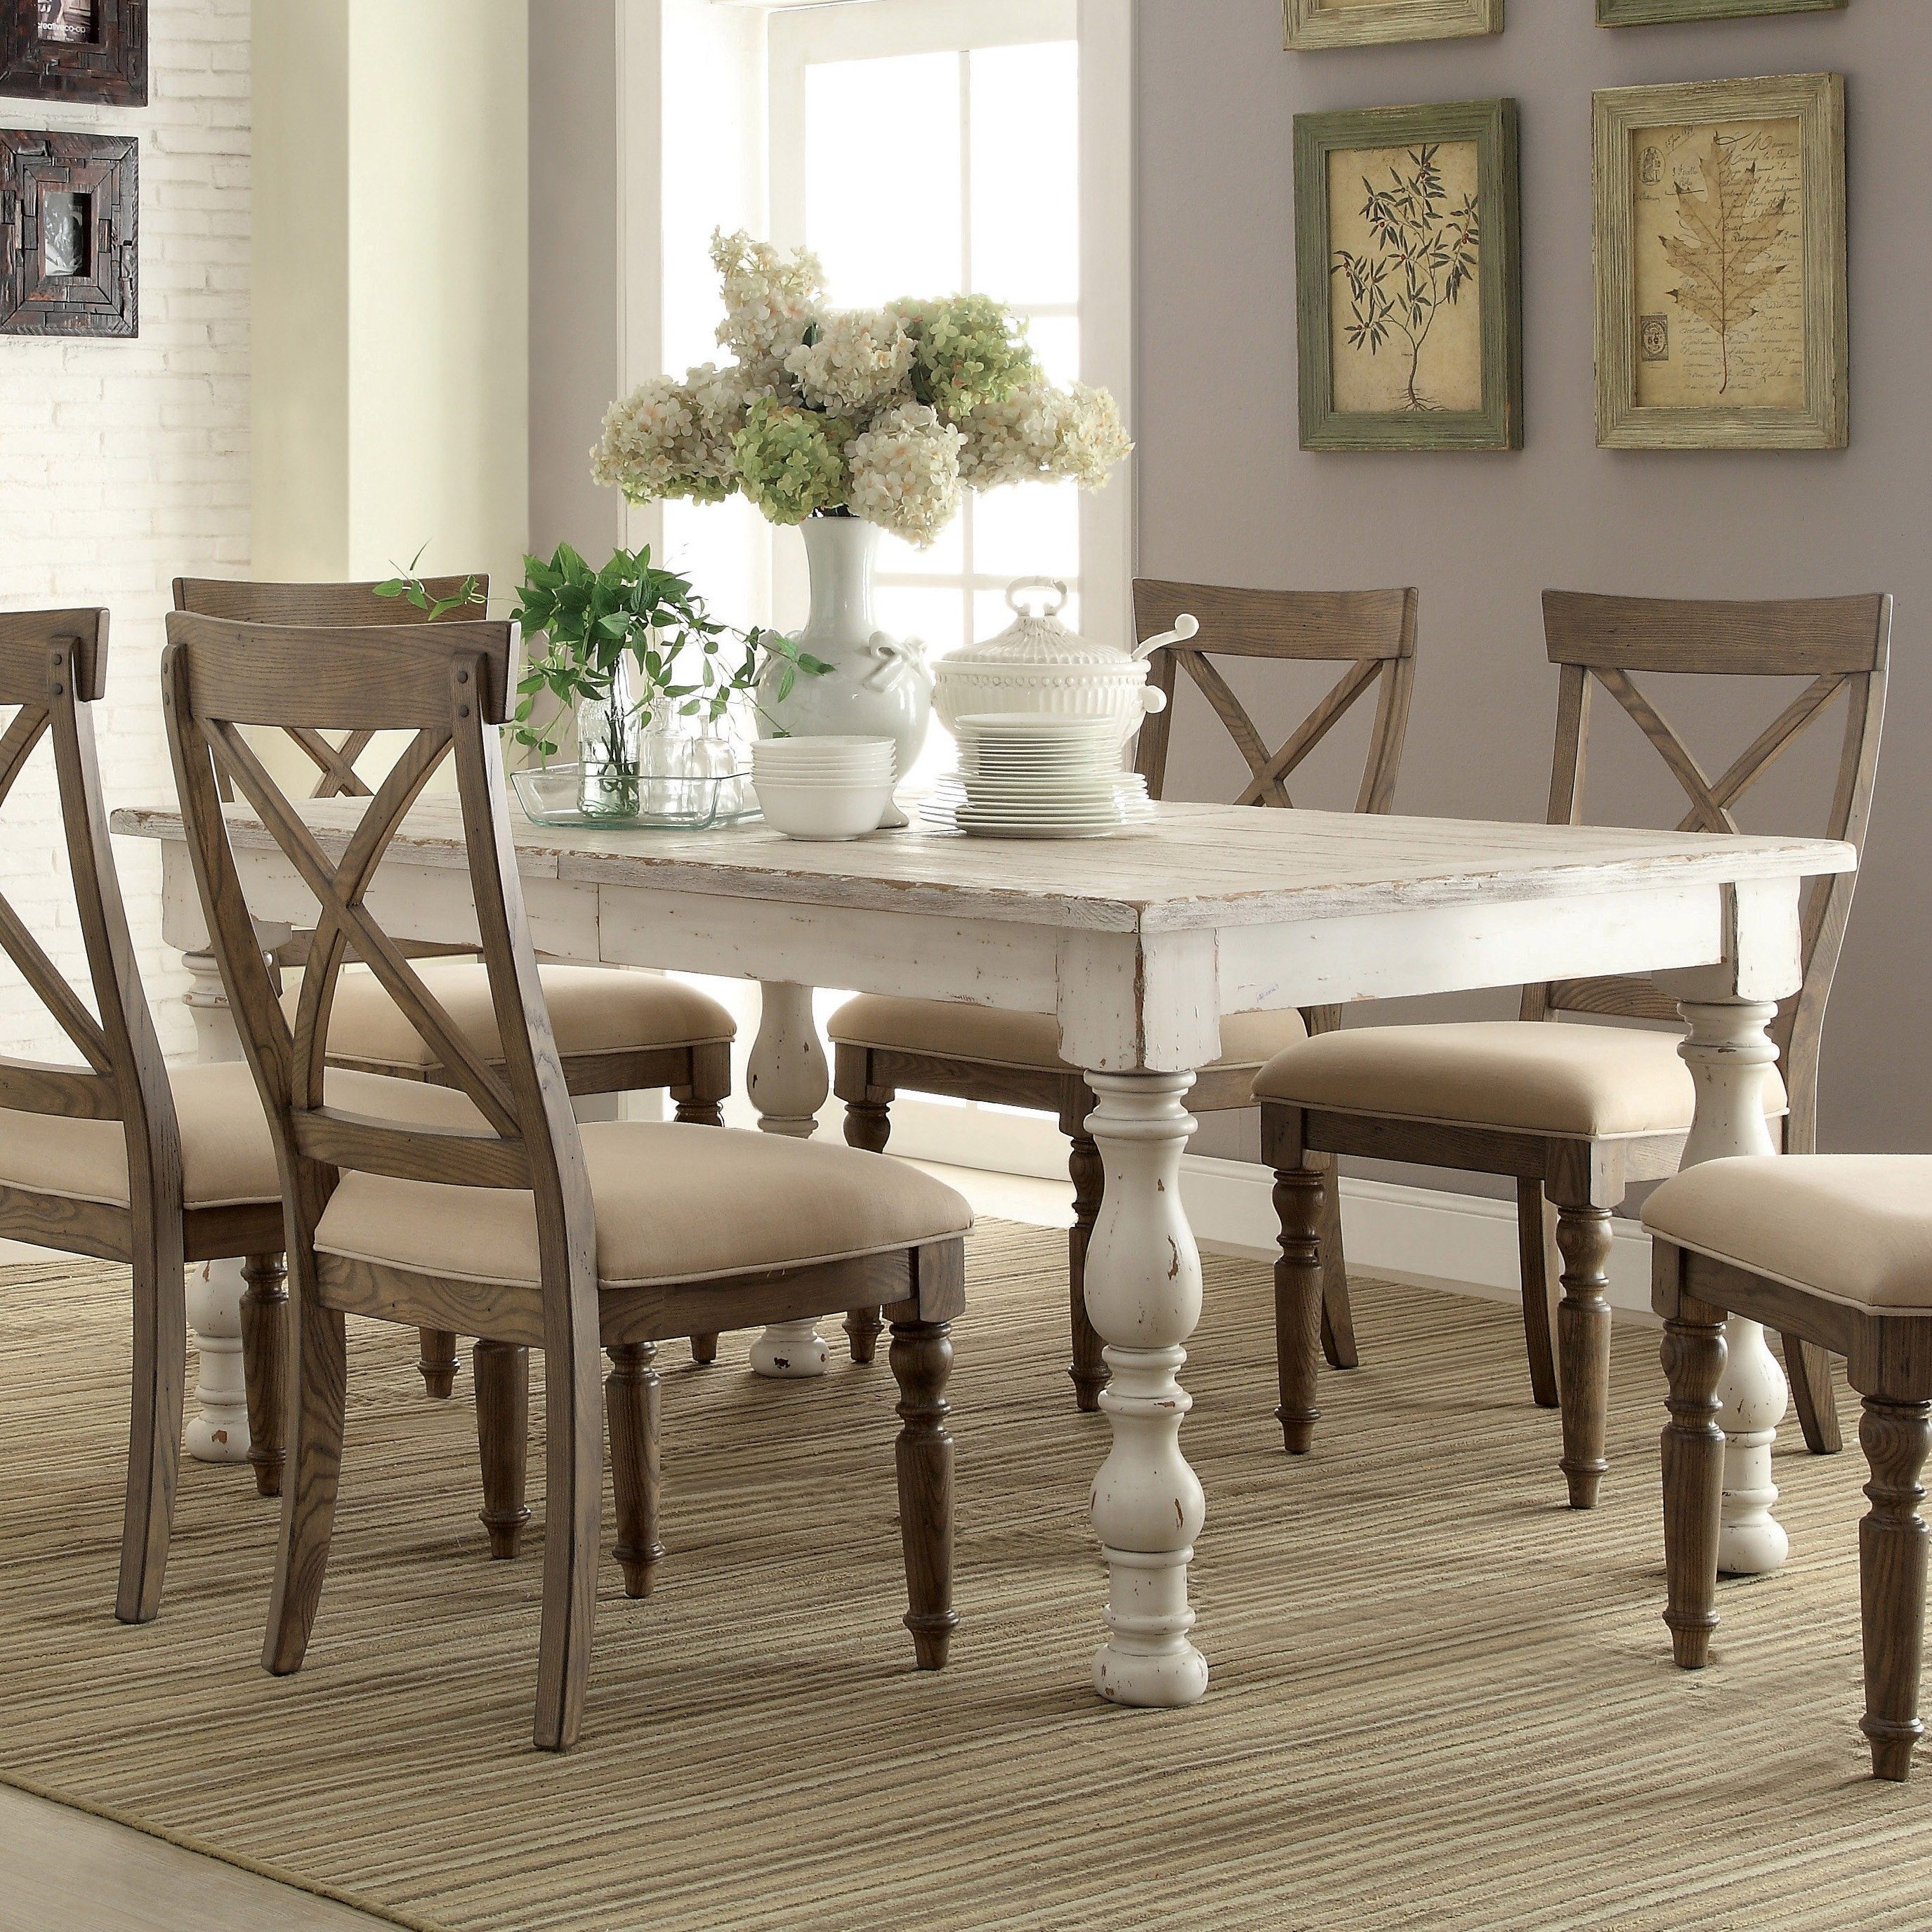 Aberdeen wood rectangular dining table and chairs in for Wooden dining table chairs